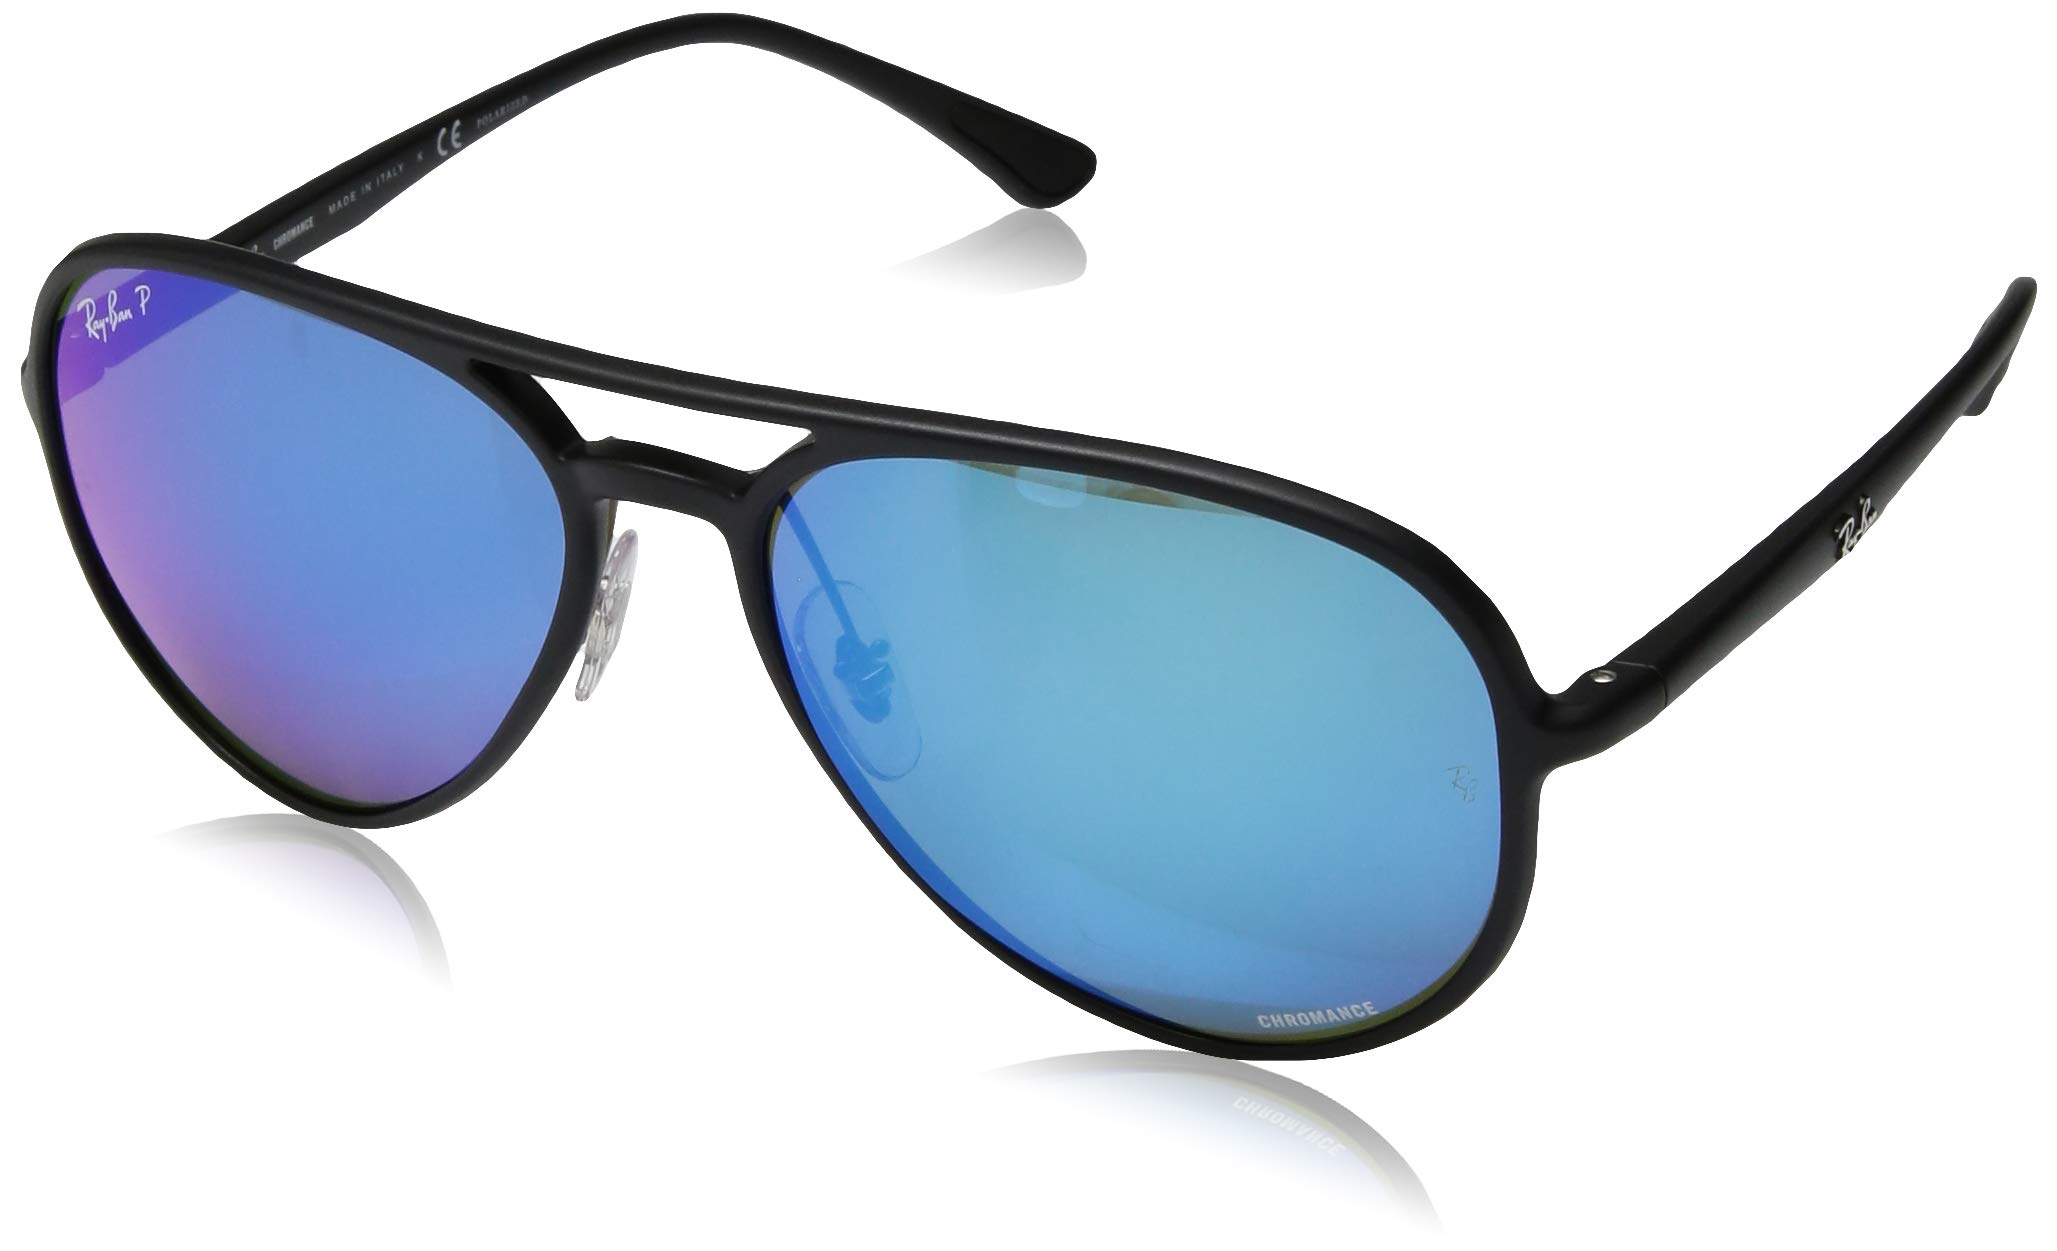 RAY-BAN RB4320CH Chromance Mirrored Aviator Sunglasses, Matte Black/Polarized Blue Mirror, 58 mm by RAY-BAN